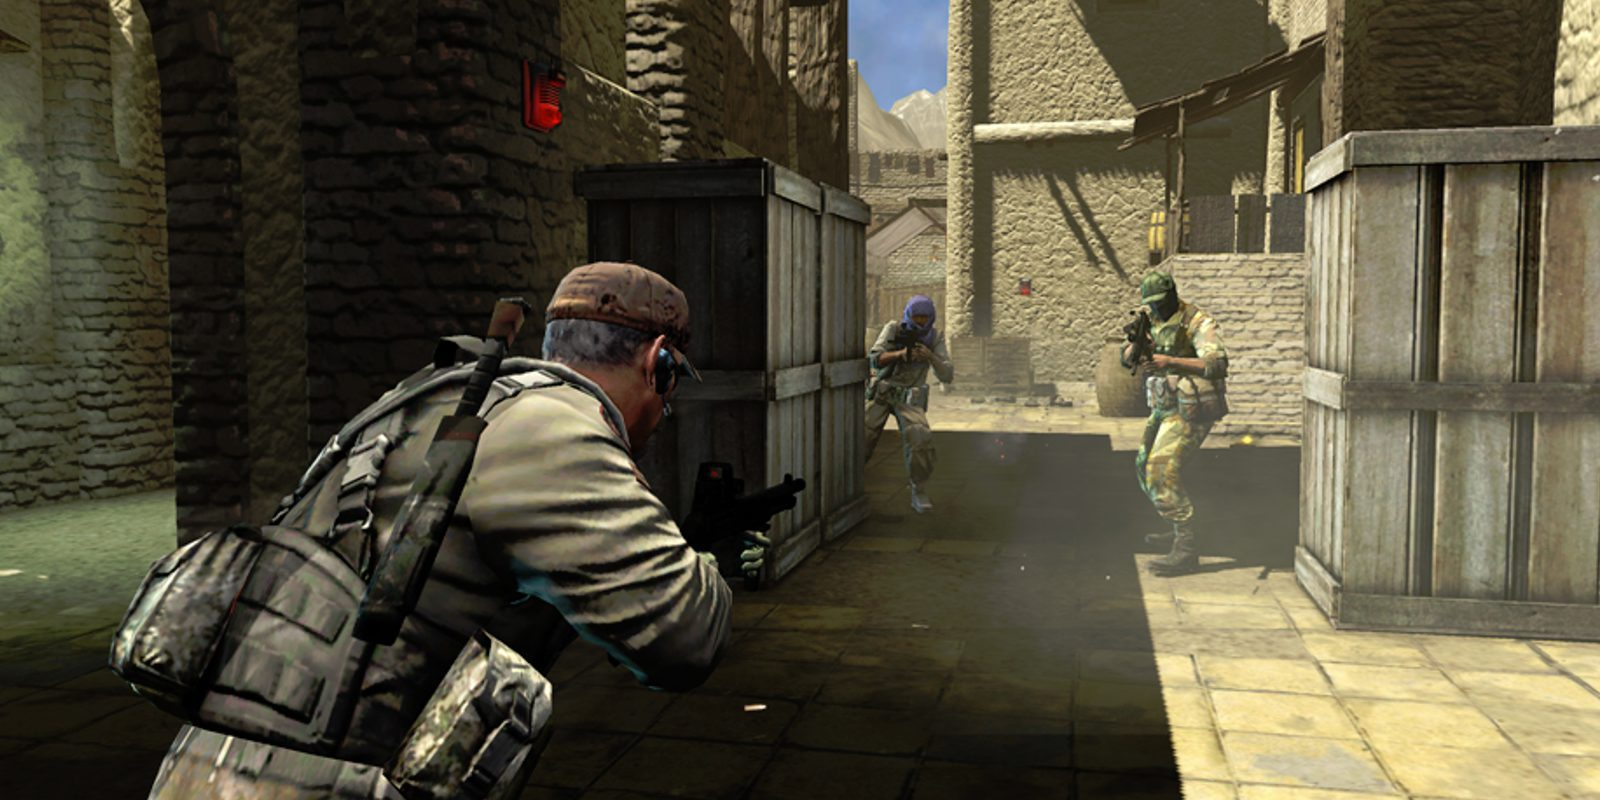 third person shooter video game - 960×544